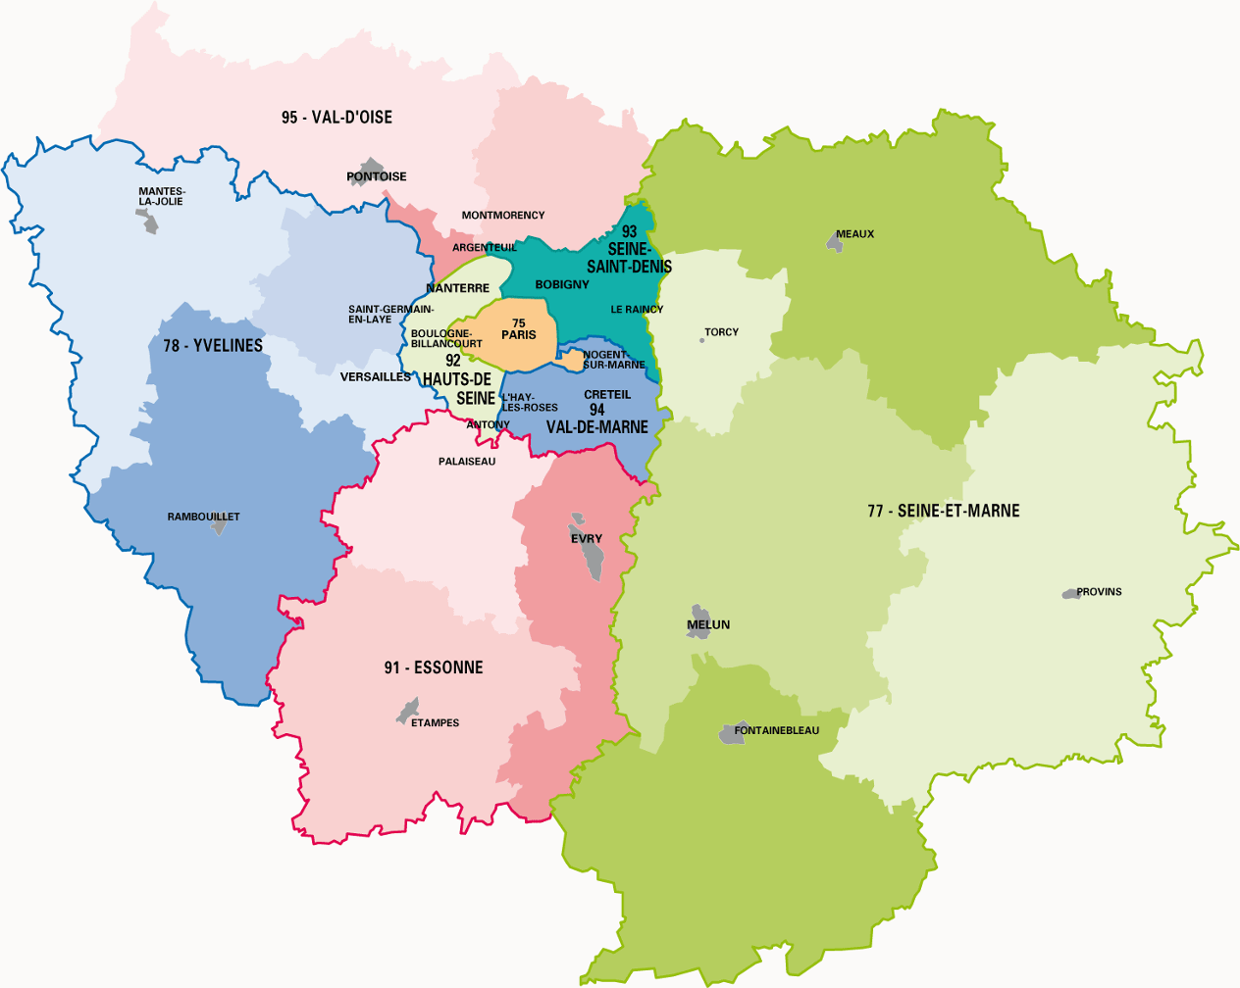 carte ile de france départements La carte des départements de la région Ile de France